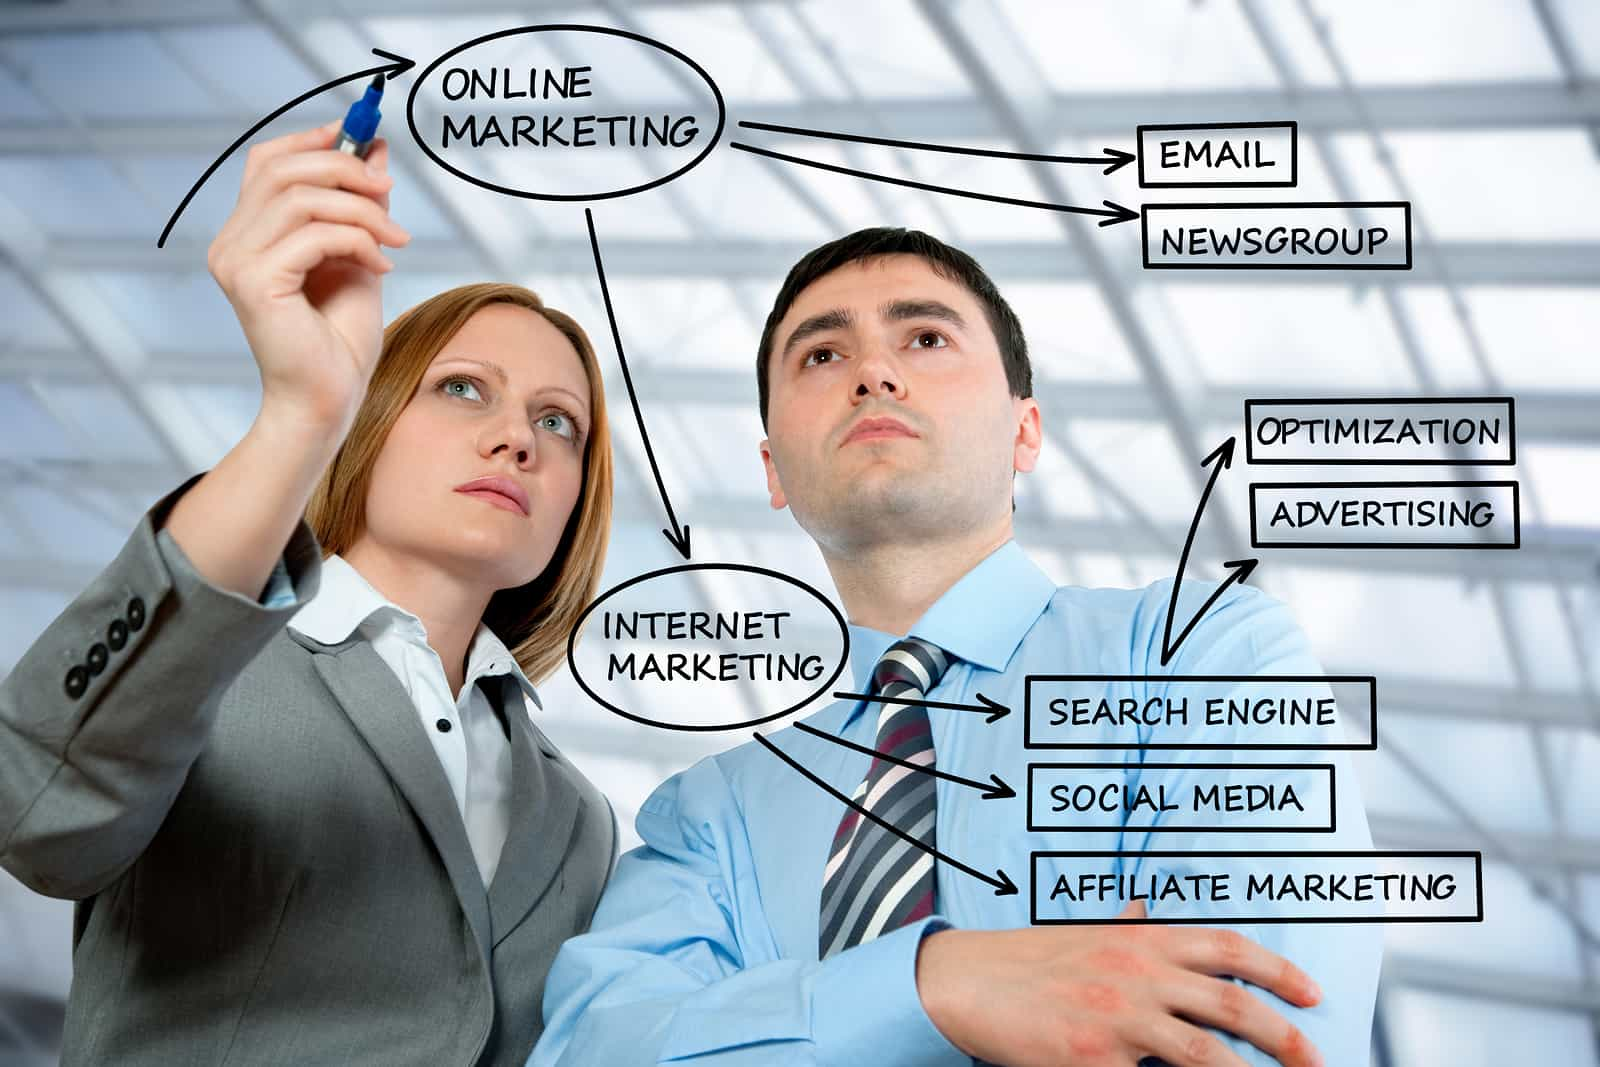 Your search for Online Marketing Company Melbourne ends here